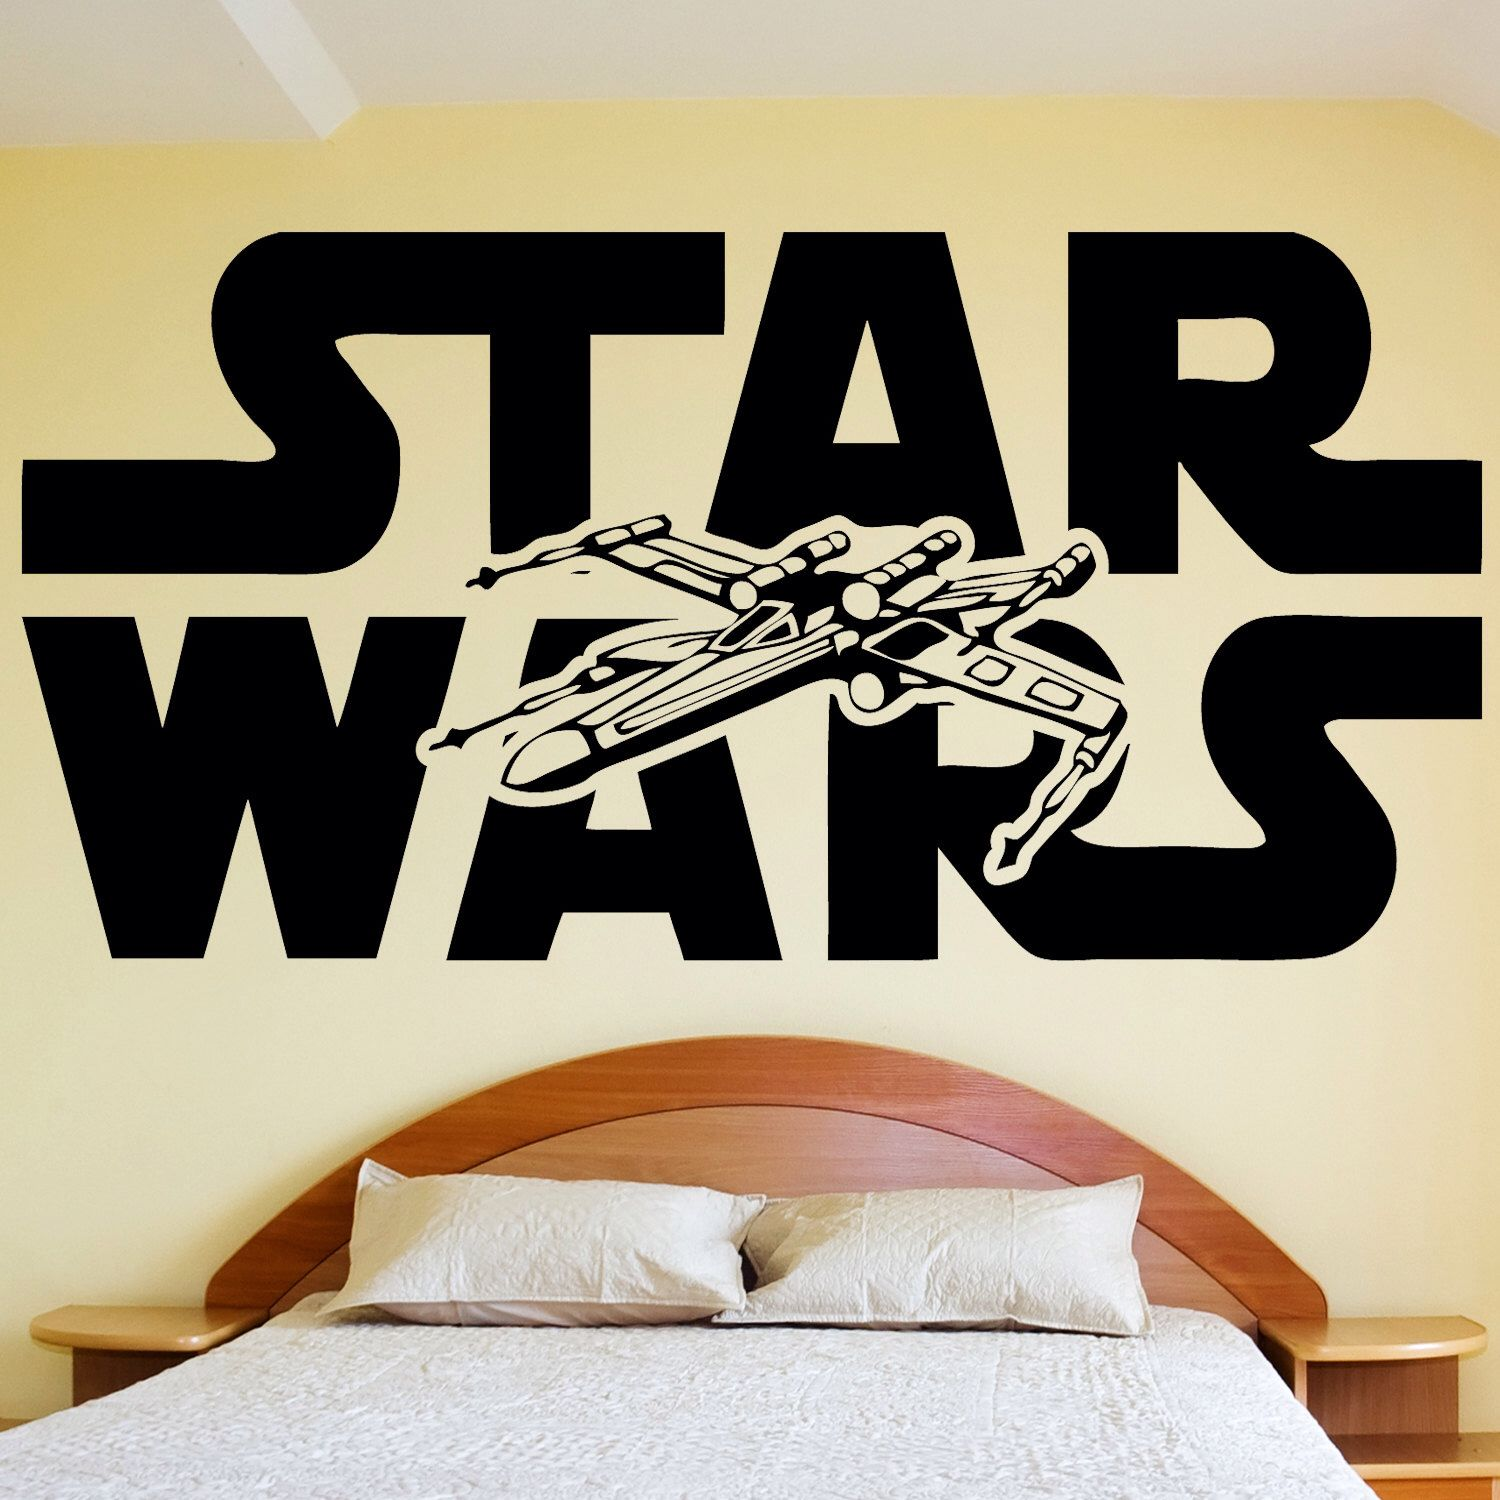 STAR WARS Wall Decal Sticker Vinyl Silhouette Logo And Xwing X Wing Fighter  Art Decor Par